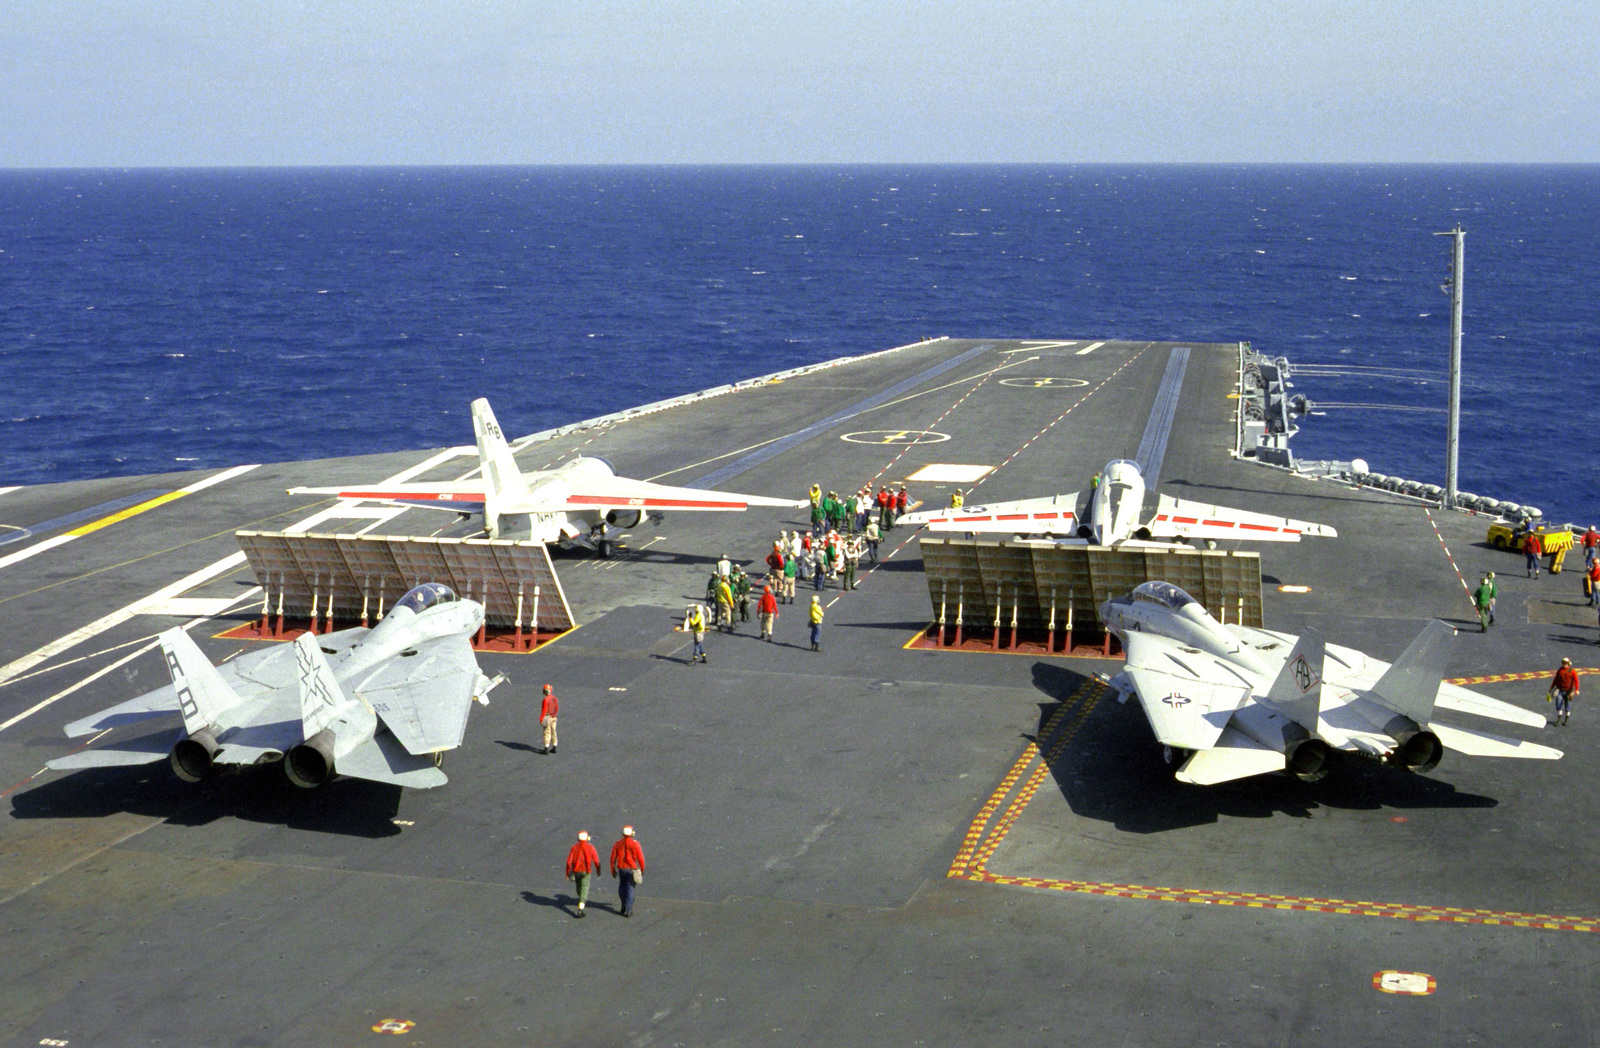 An S-3A Viking aircraft, left, and an A-6E Intruder aircraft are in position for launch on the flight deck of the nuclear-powered aircraft carrier USS THEODORE ROOSEVELT (CVN-71). Behind each blast deflector is an F-14A Tomcat aircraft. The aircraft, the pilots of which are working toward their carrier qualifications, are from Carrier Air Wing 1 (CVW-1), the wing assigned to the aircraft carrier USS AMERICA (CV-66)